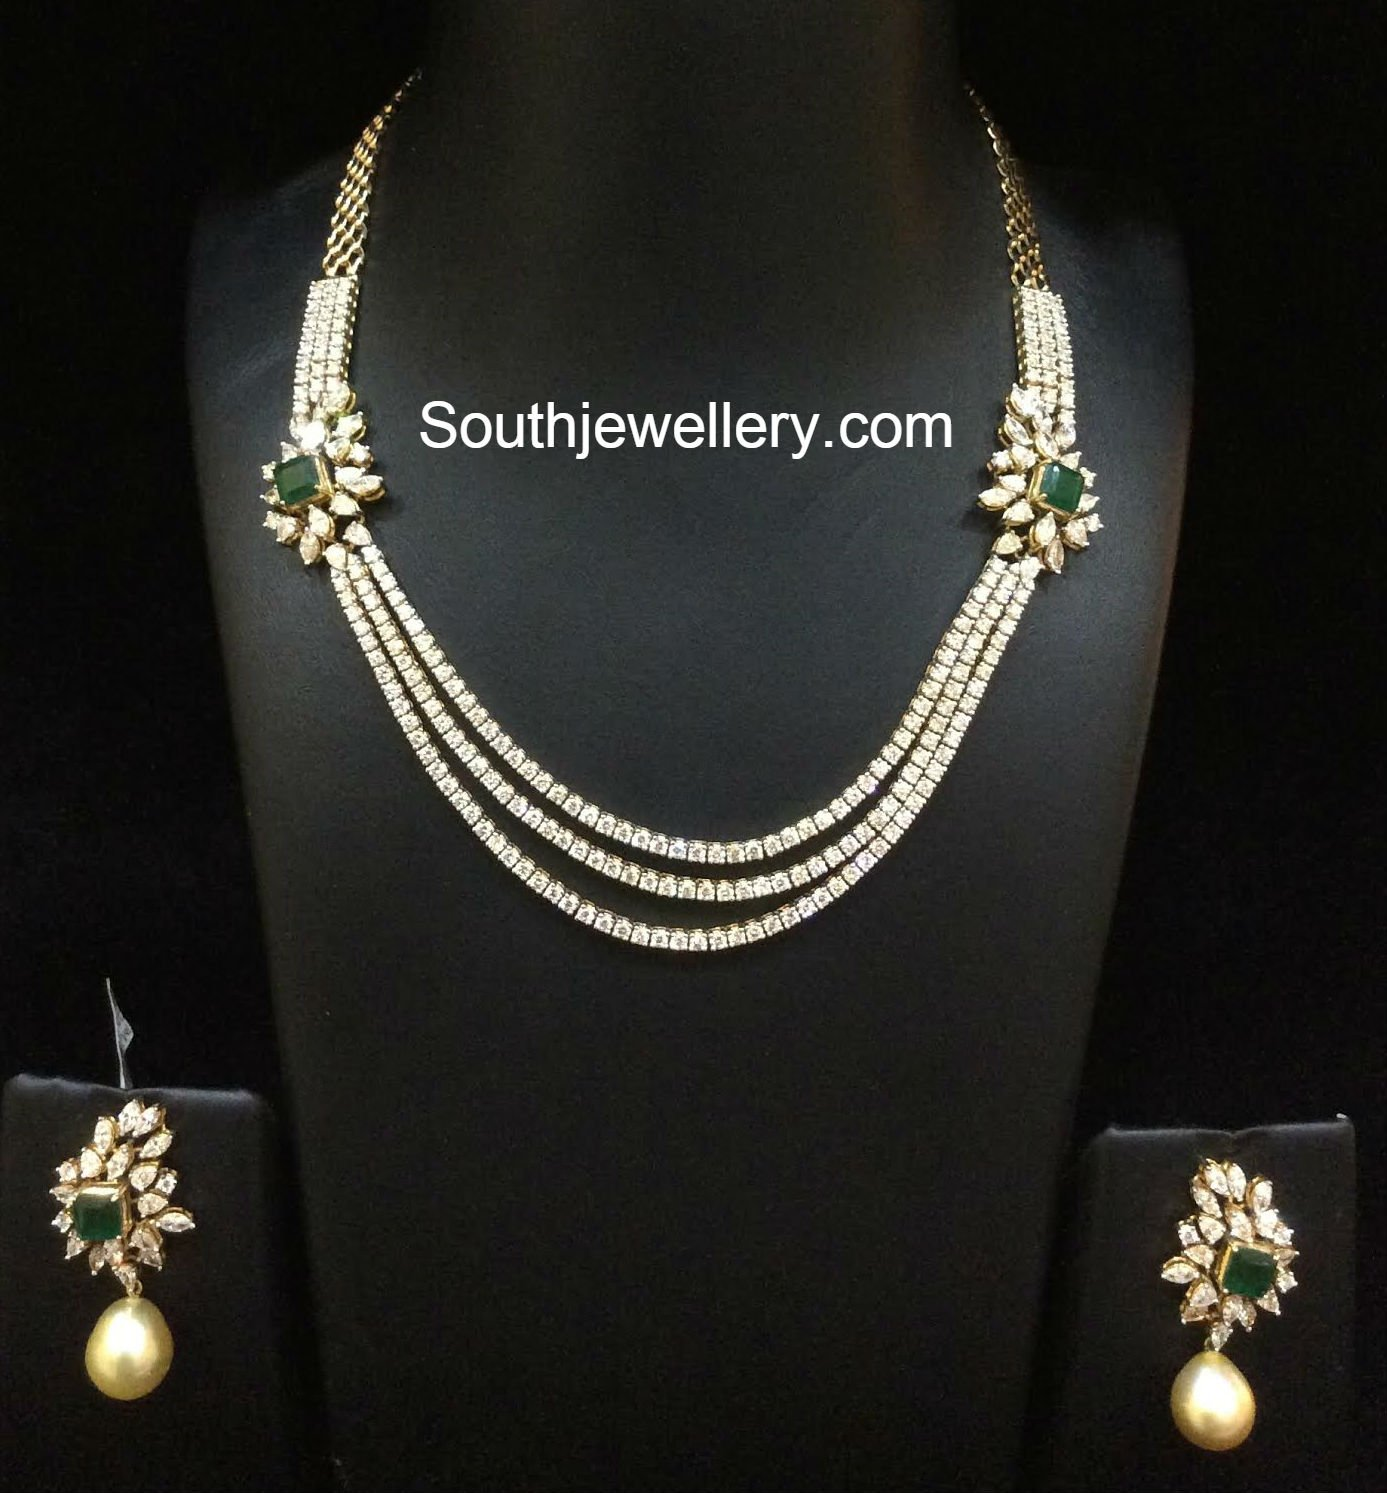 3 Simple and Elegant Diamond Necklace Sets - Jewellery Designs